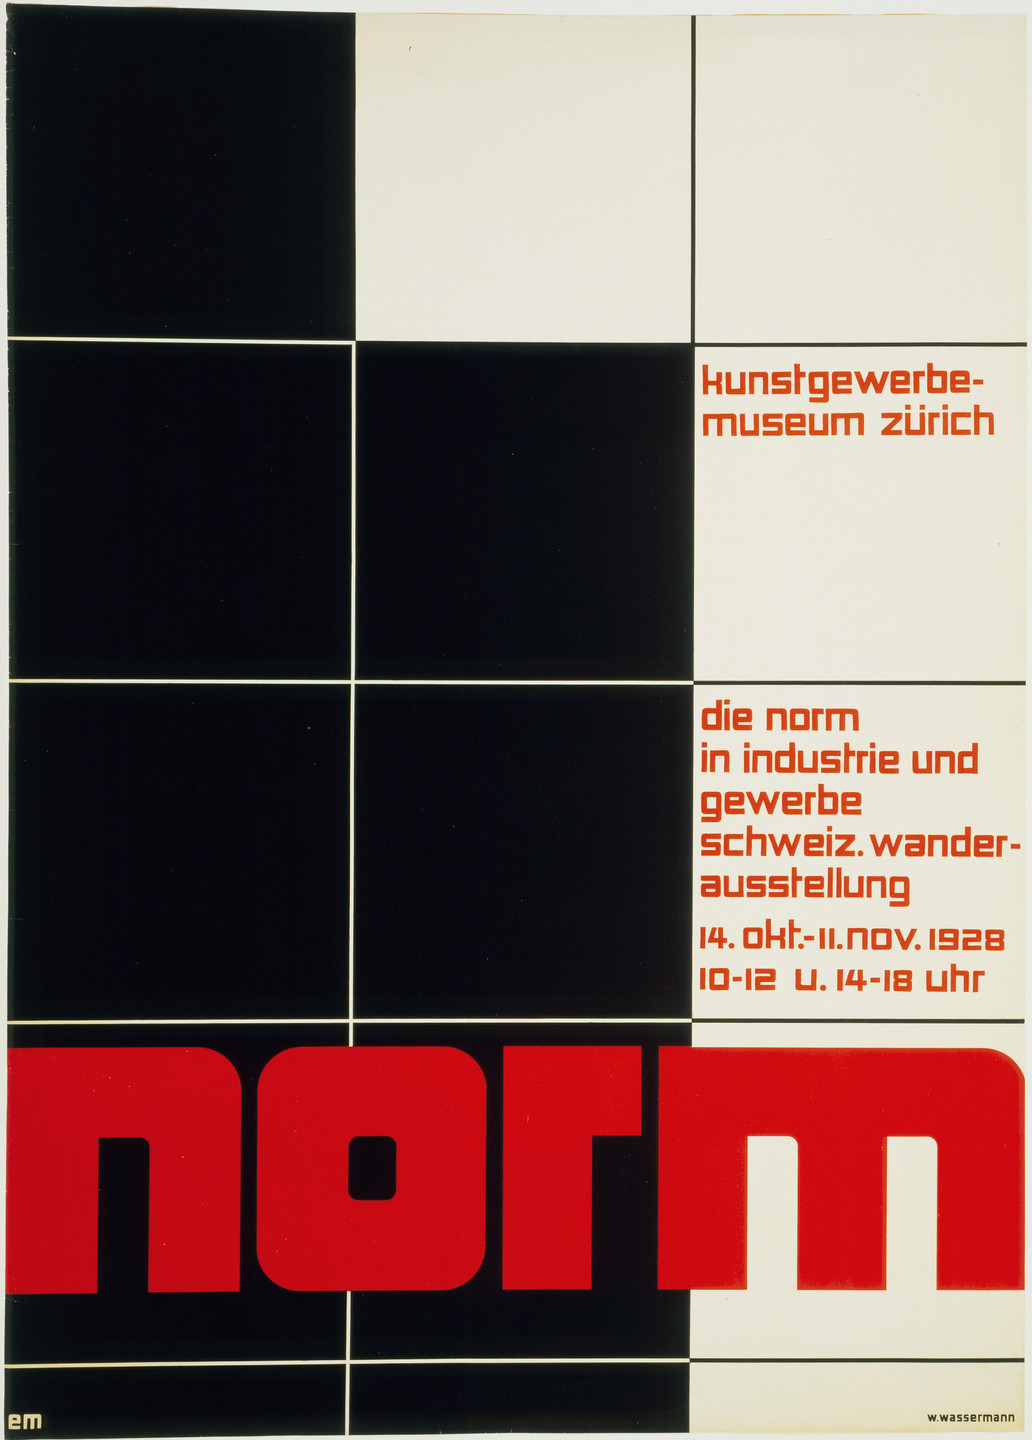 Ernst Mumenthaler, Theo H. Ballmer. Norm (Poster for an exhibition of Swiss industrial design at the Kunstgewerbemuseum Zürich). 1928